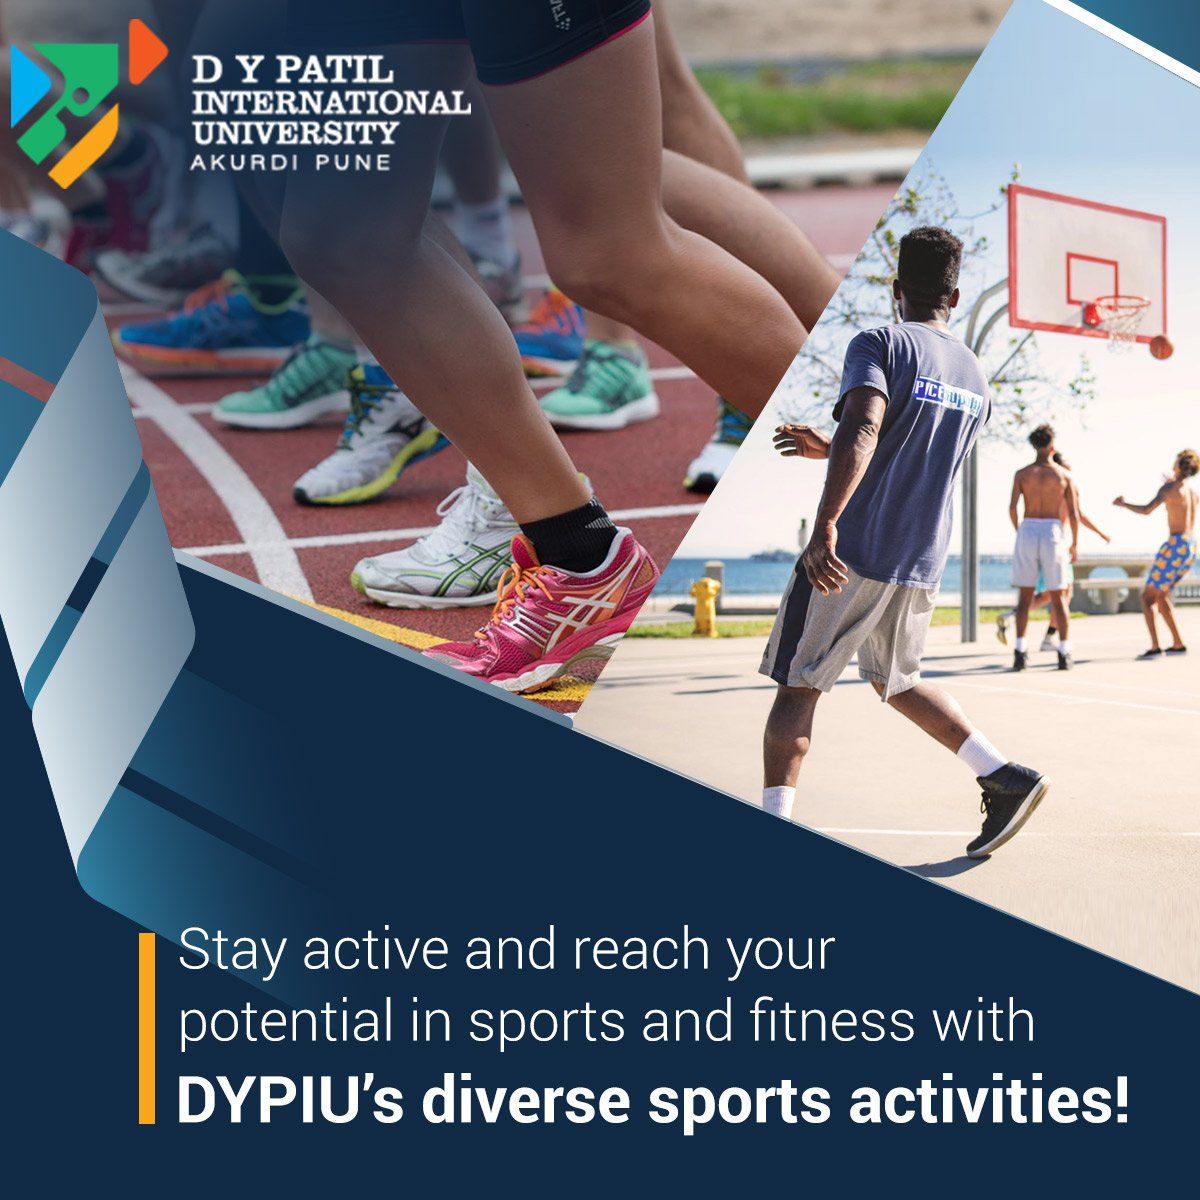 We at DYP International University believe that education, sports and fitness go hand in hand as it helps in maintaining the physical and mental equilibrium!  Find out more about our #CampusLife here: https://bit.ly/2N7W6n2  #DYPIU #Sports #Athletics #DYPIUAkurdi